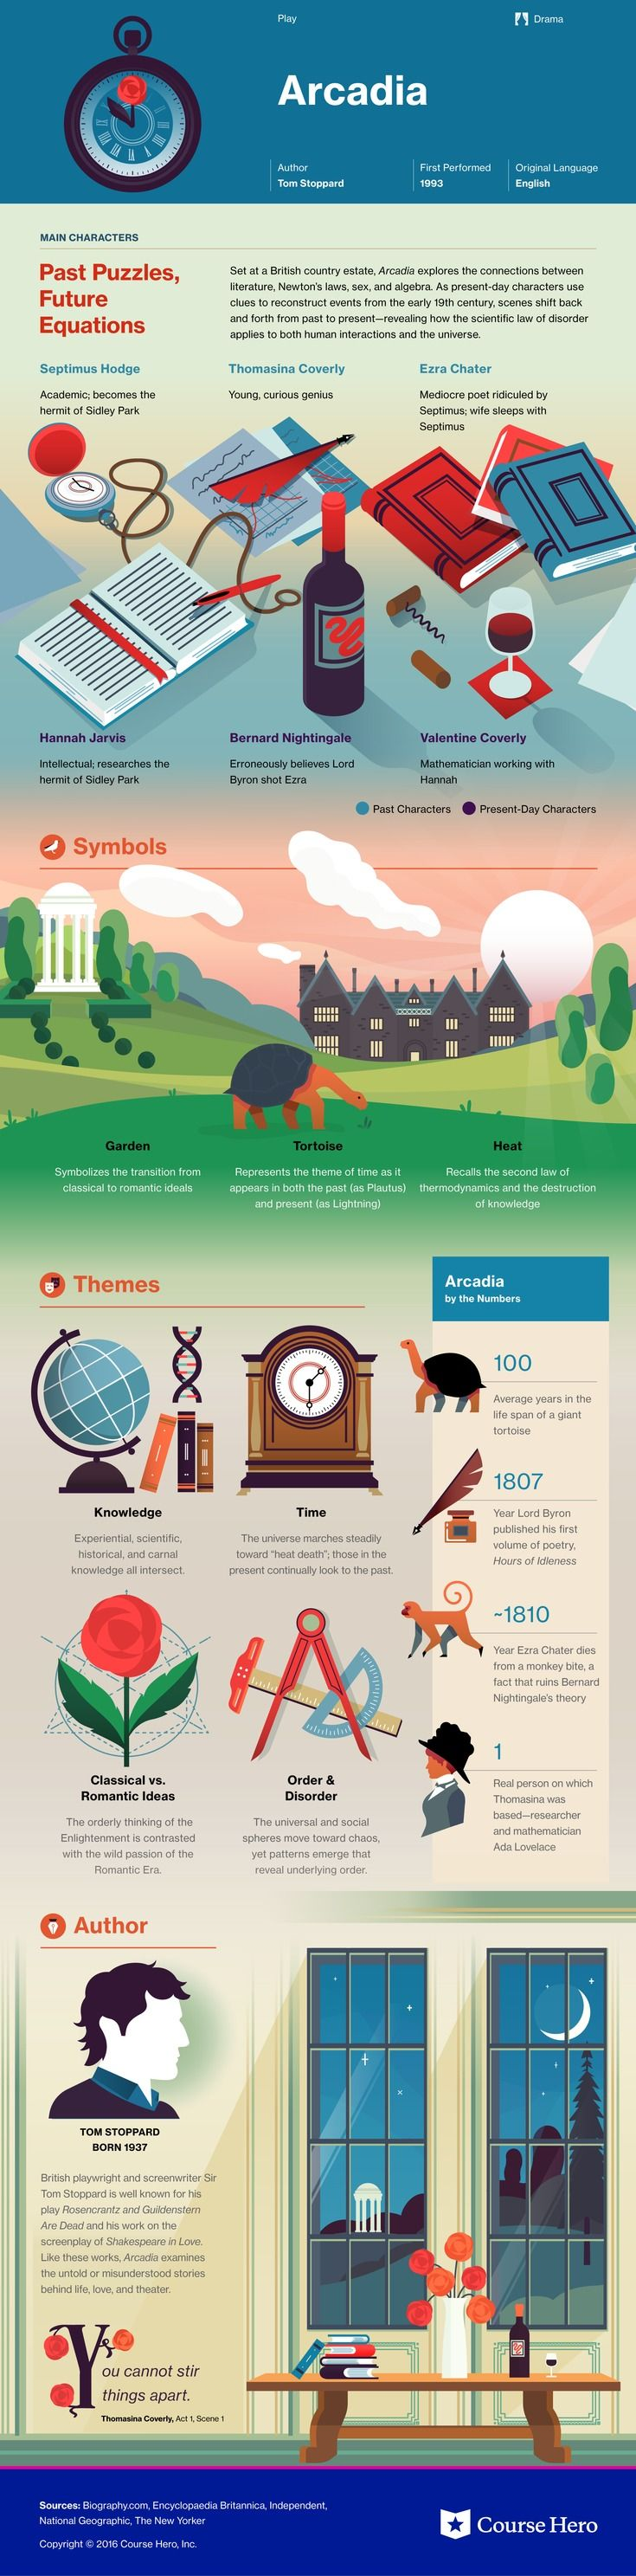 This @CourseHero infographic on Arcadia is both visually stunning and informative!